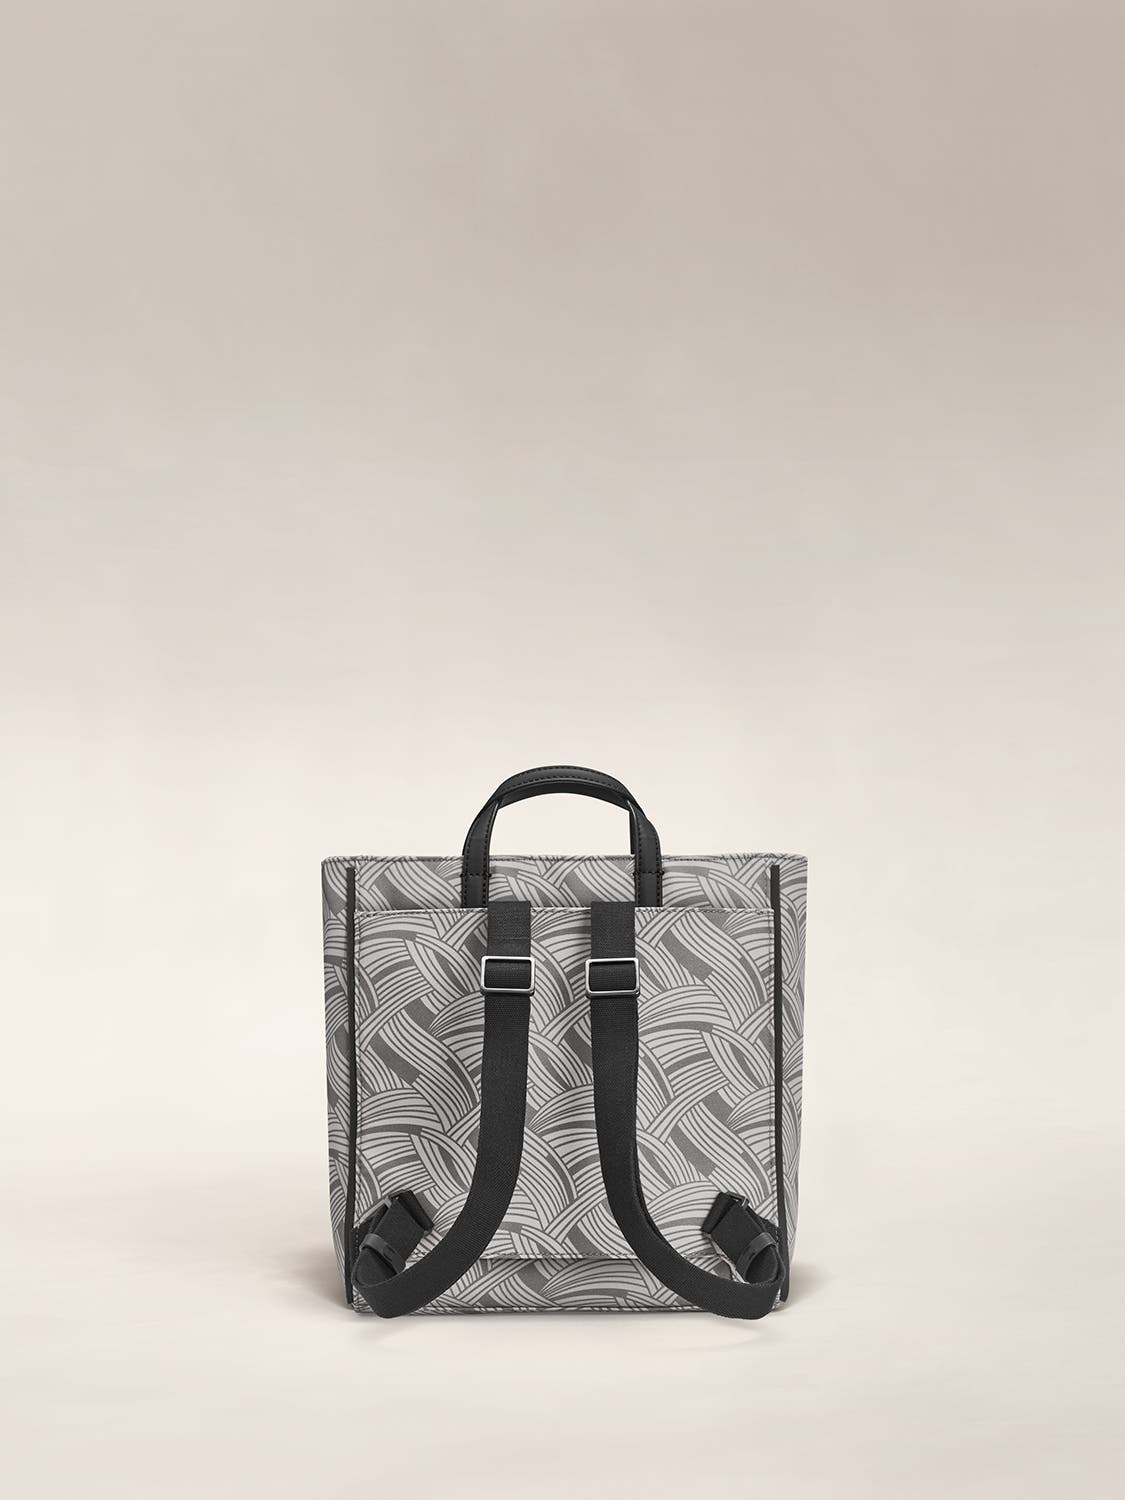 The back of a patterned grey tote with backpack straps in black.